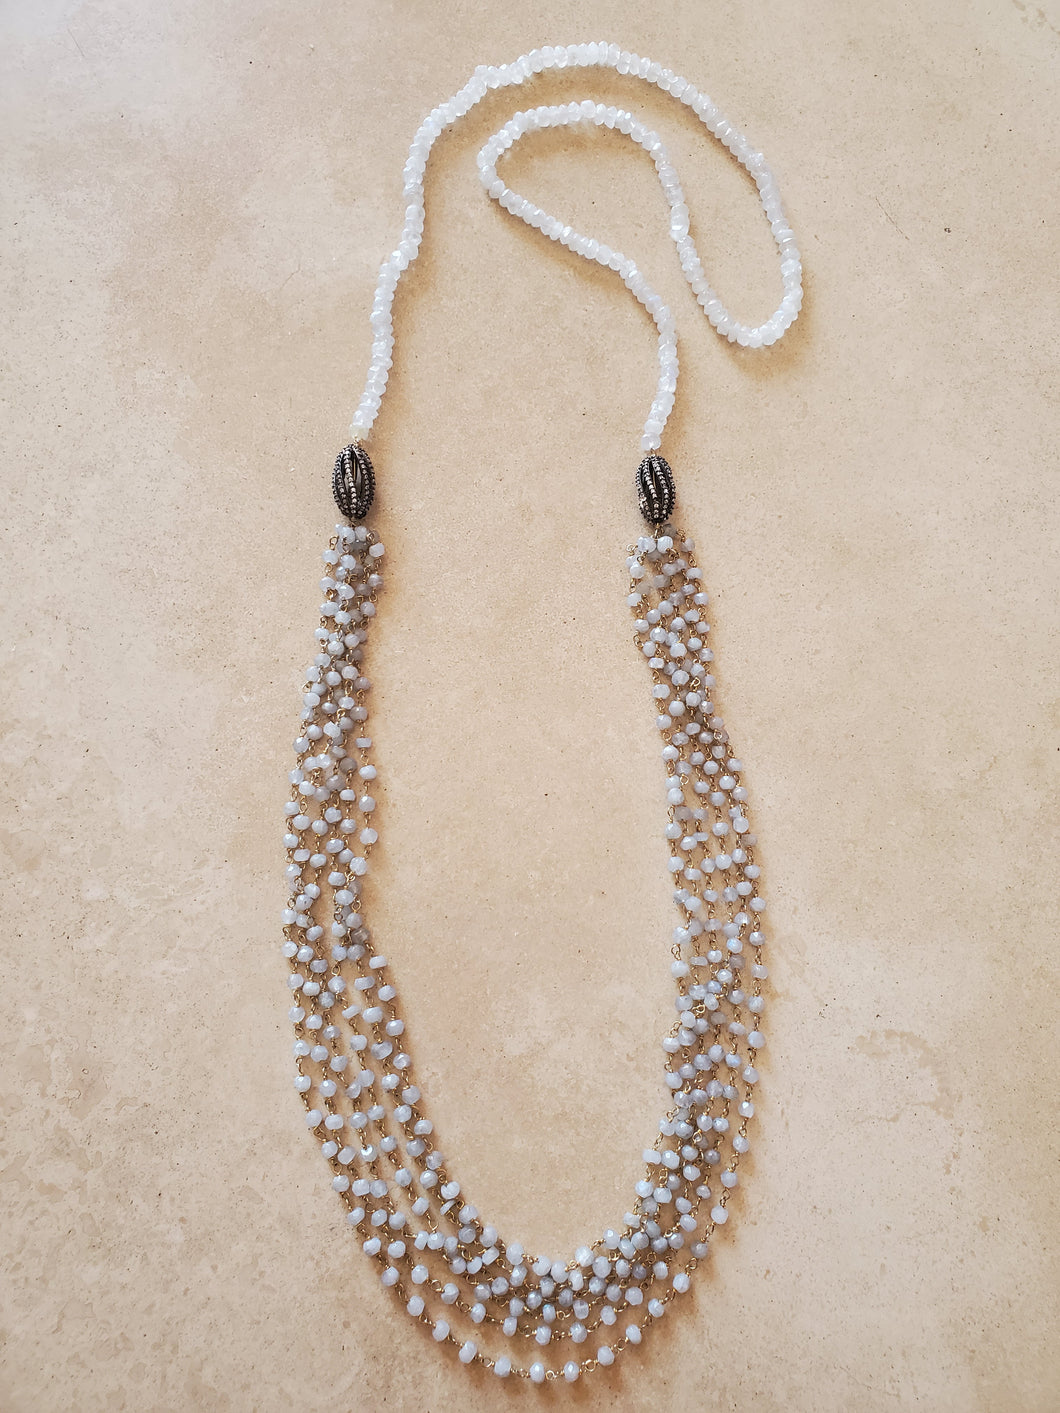 Long Moonstone Necklace with Silver Bead Accent